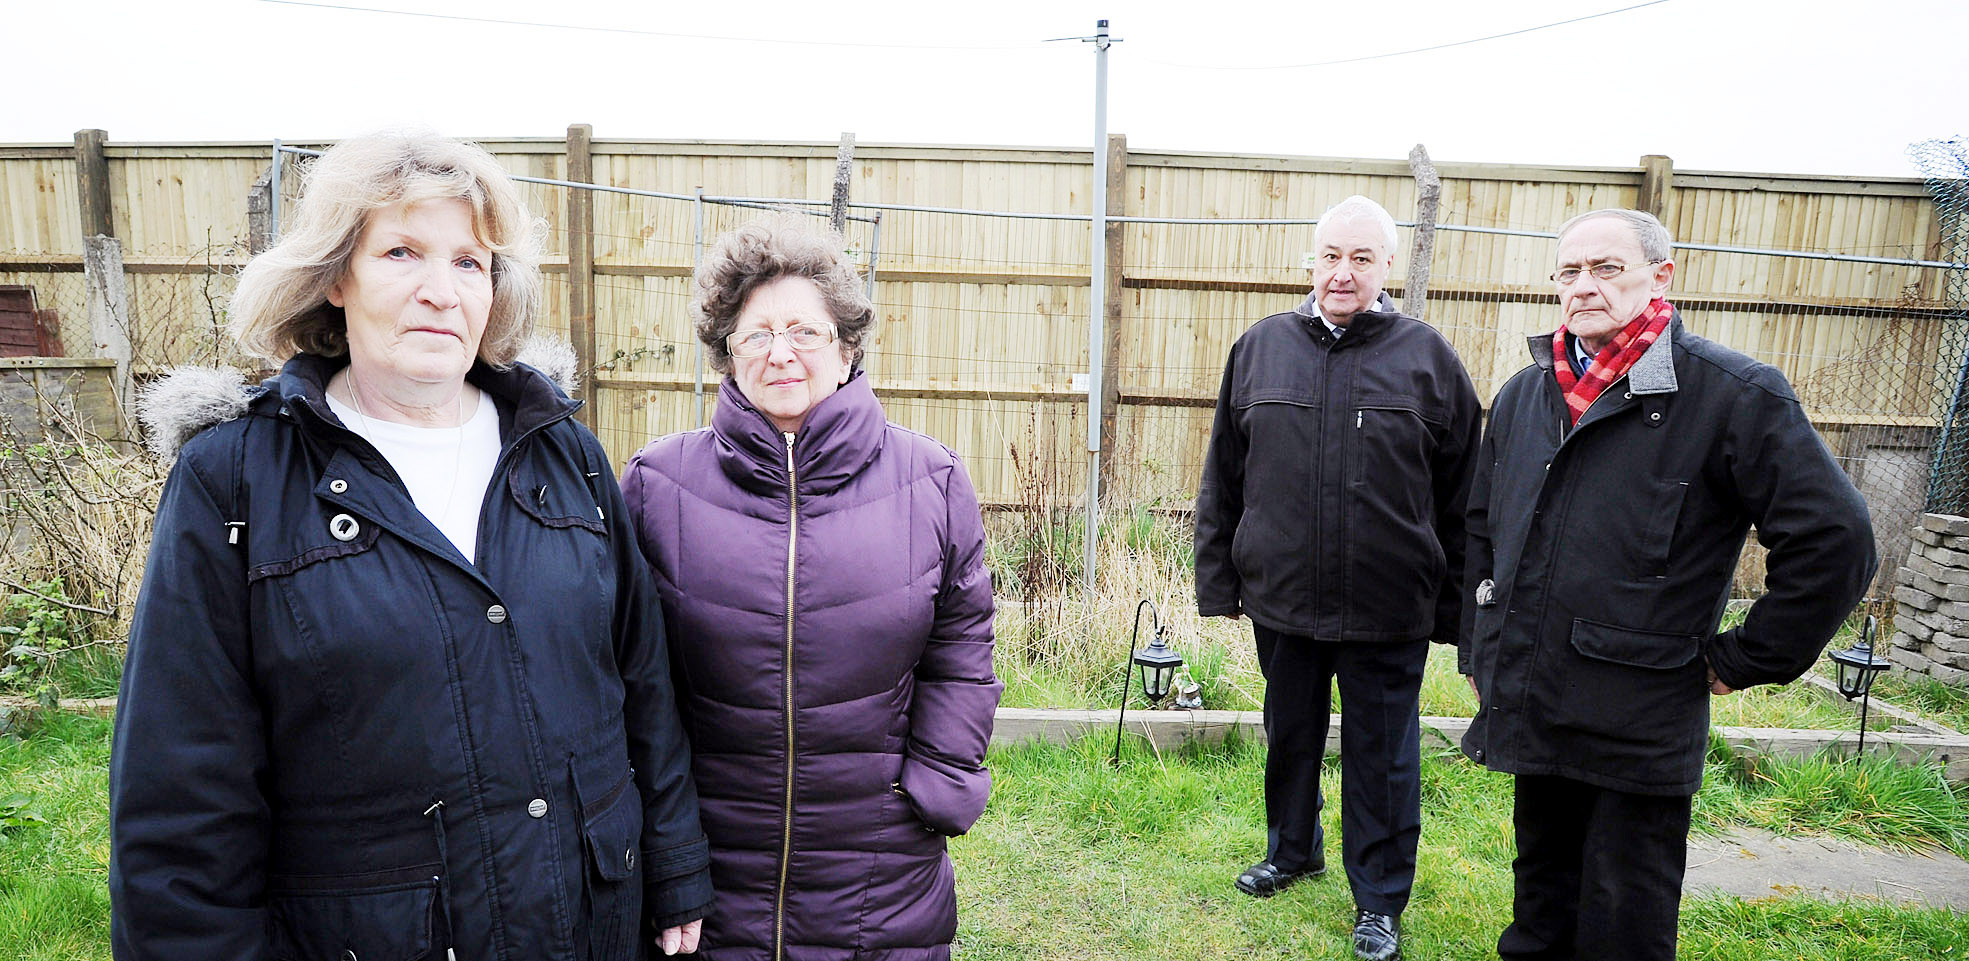 Residents Hilary Smith, left, and Rina Horner with prospective councillor for Little Lever Eric Hyde and local activist Paul Richardson